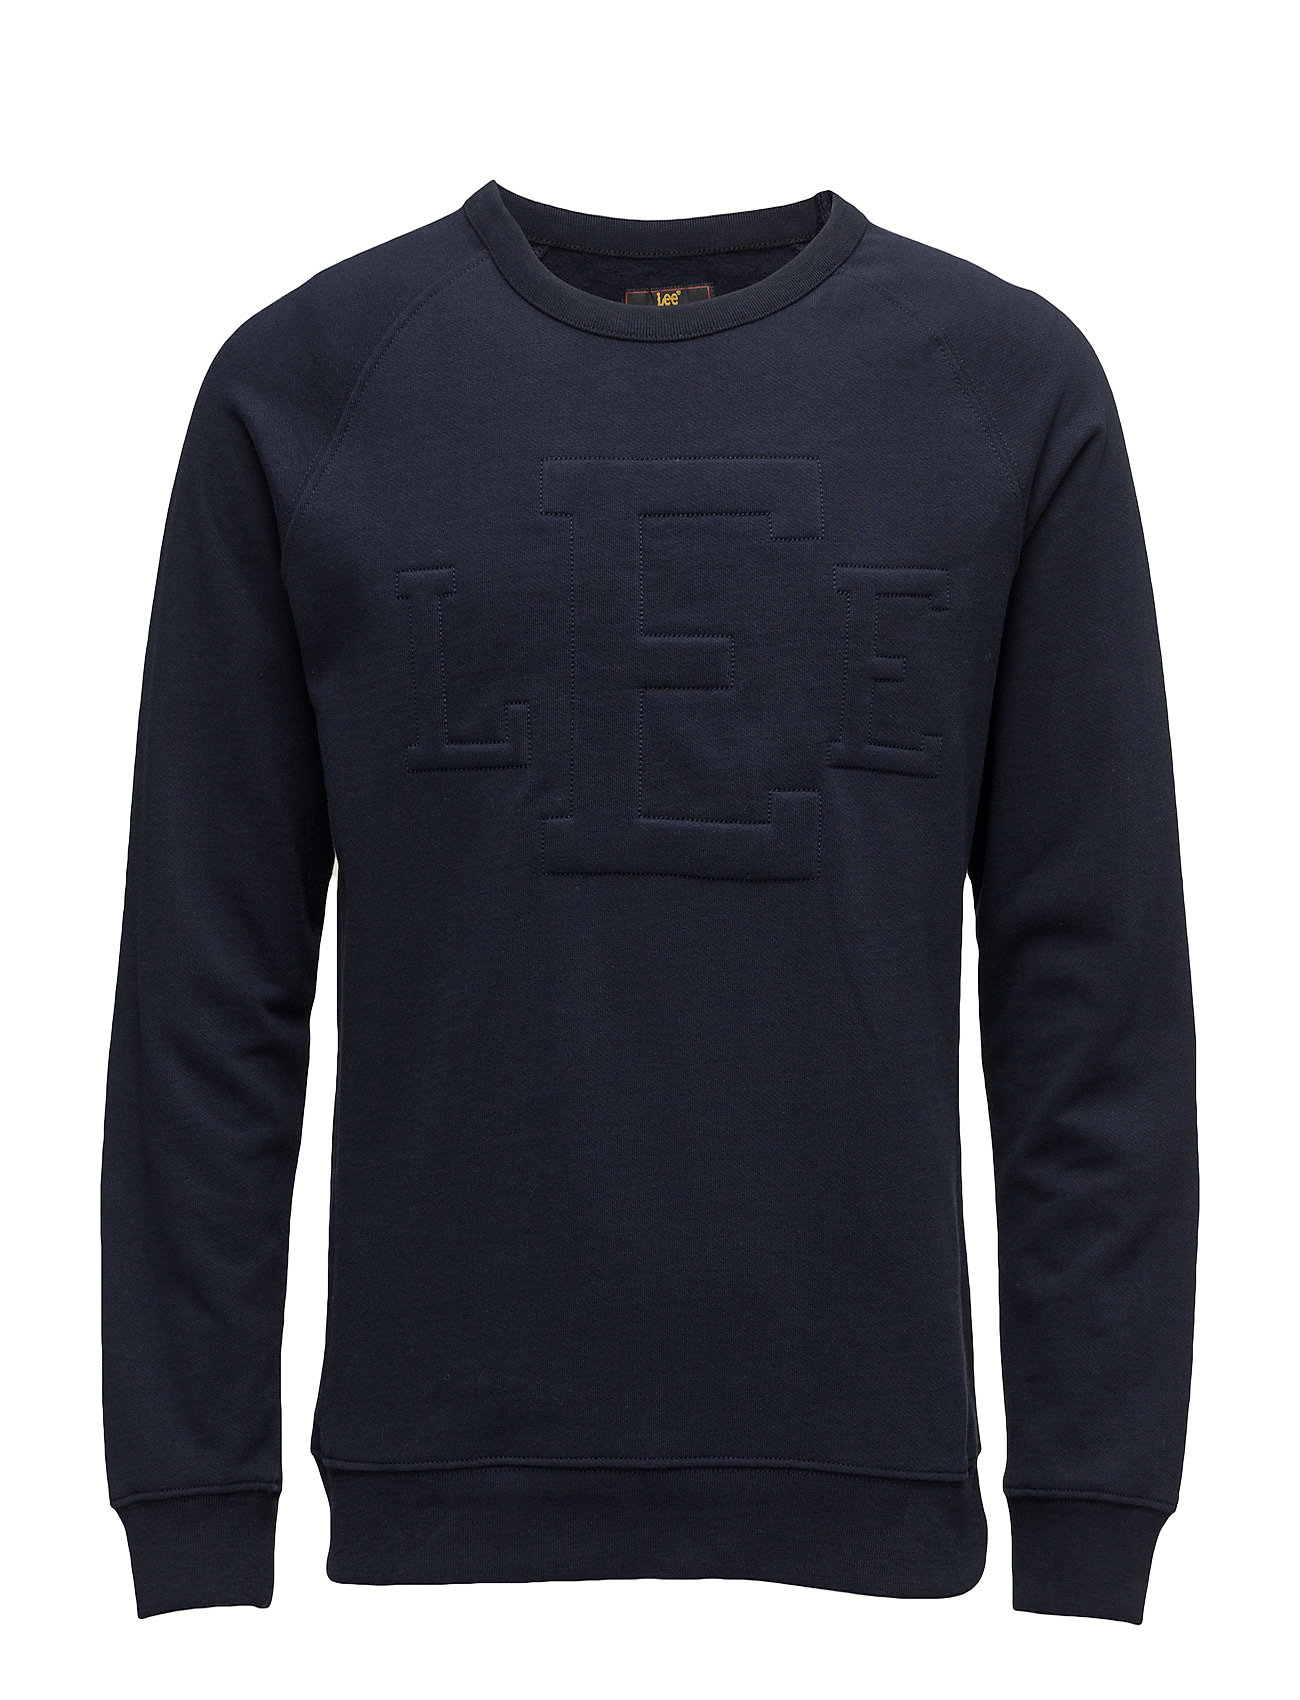 Lee Sweatshirt Midnight Blue thumbnail